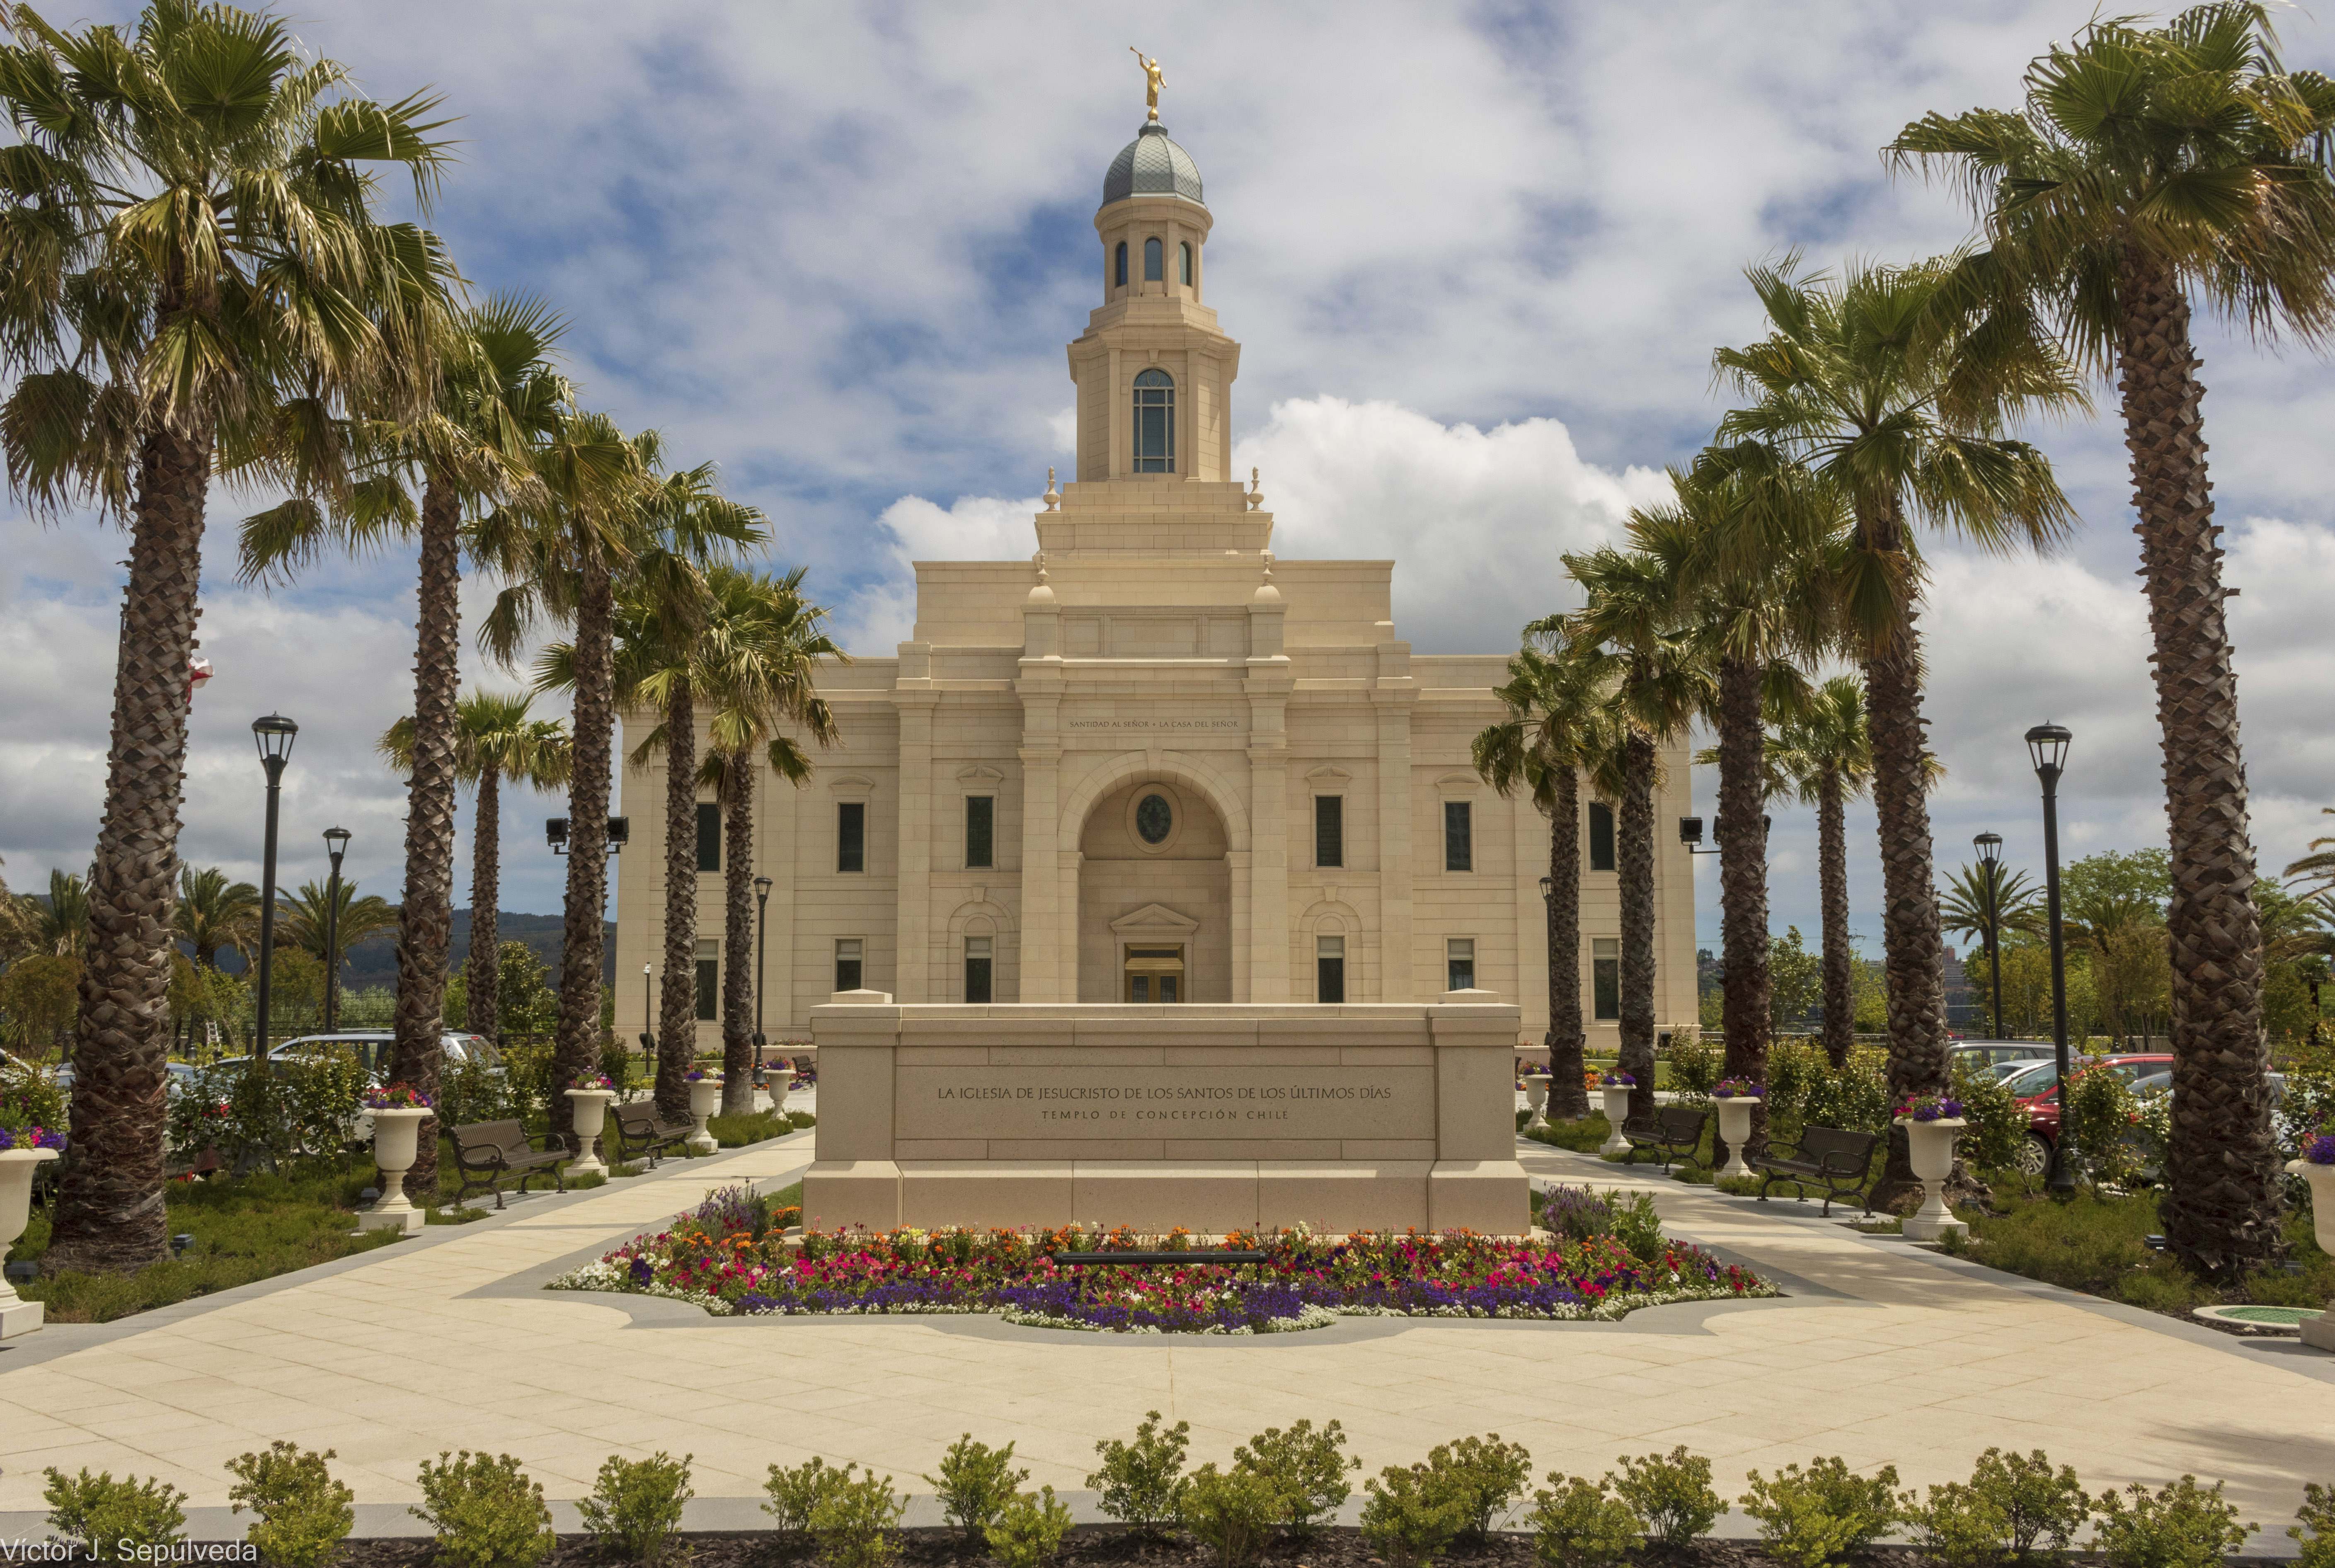 A full view of the Concepción Chile Temple and grounds.